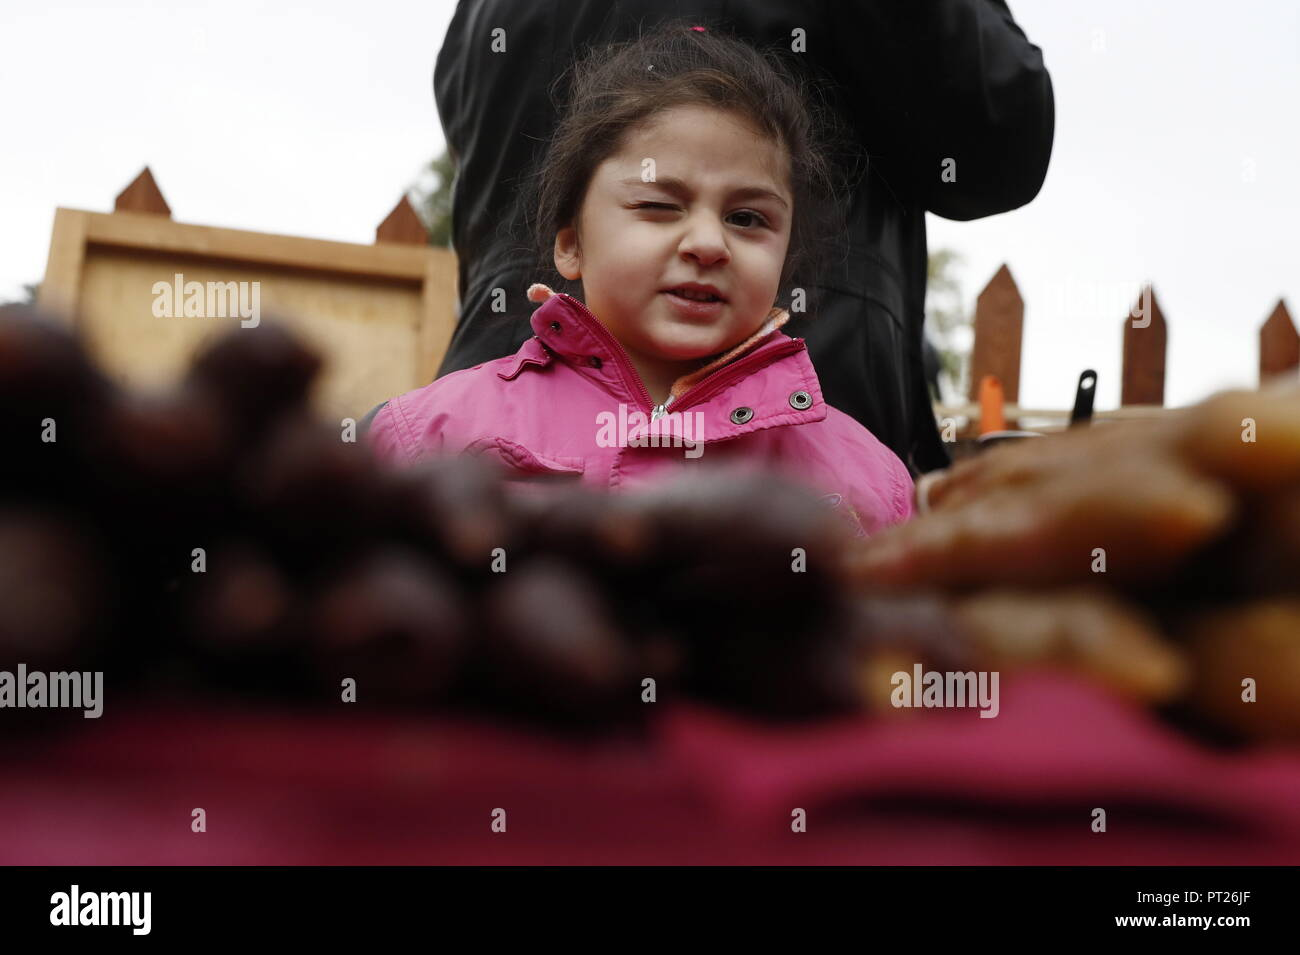 Moscow, Russia. 06th Oct, 2018. MOSCOW, RUSSIA - OCTOBER 6, 2018: Children at the annual 2018 Tbilisoba Festival of Georgian Culture at the Moscow Hermitage Garden. Artyom Geodakyan/TASS EDITORIAL USE ONLY; NO COMMERCIAL USE; NO ADVERTISING Credit: ITAR-TASS News Agency/Alamy Live News Stock Photo